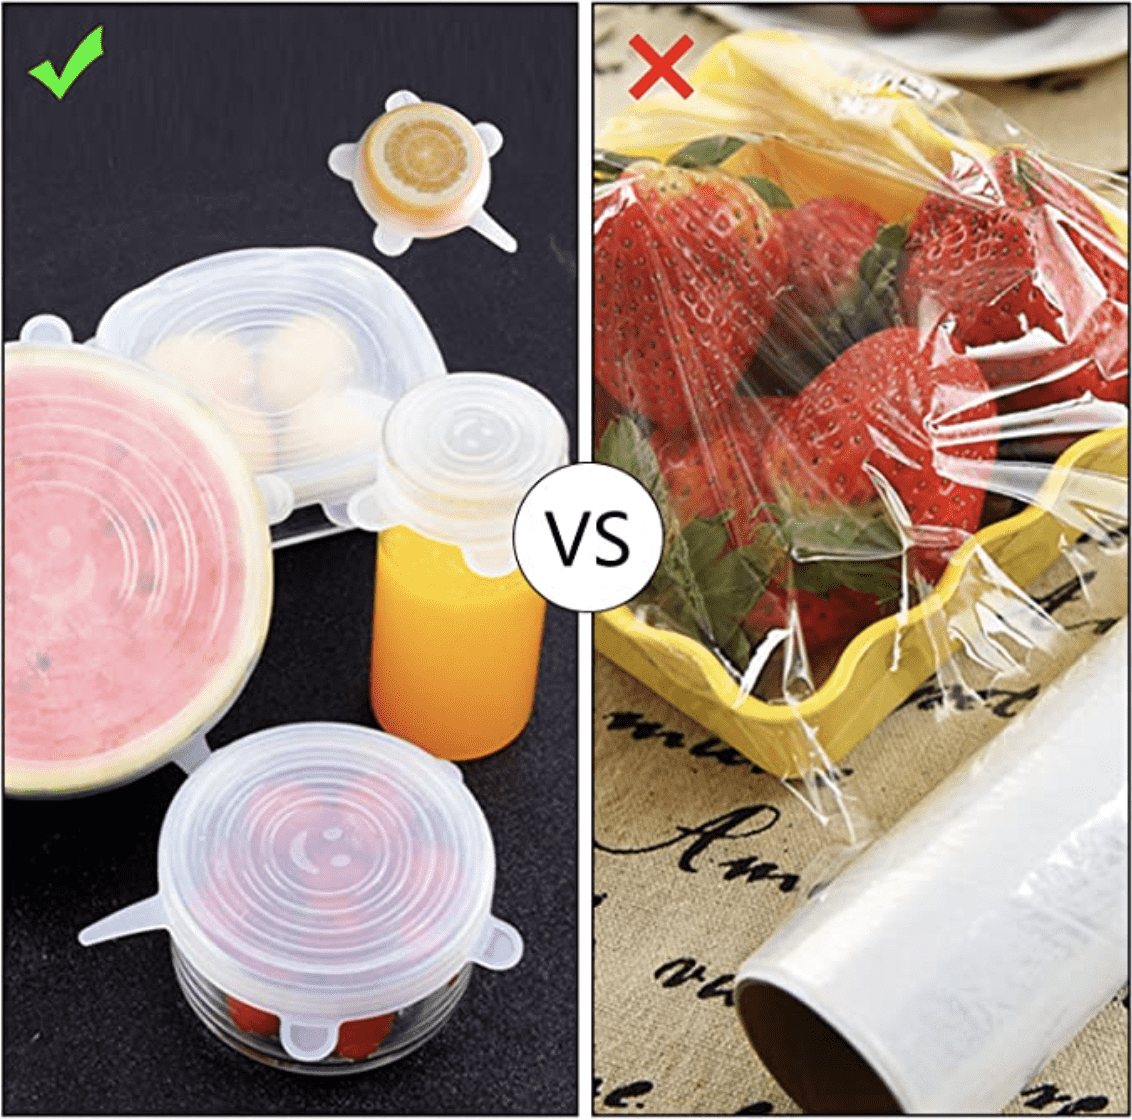 6 Pcs/Set Silicone Stretch Lids Reusable Food Covers Best Silicone Lids